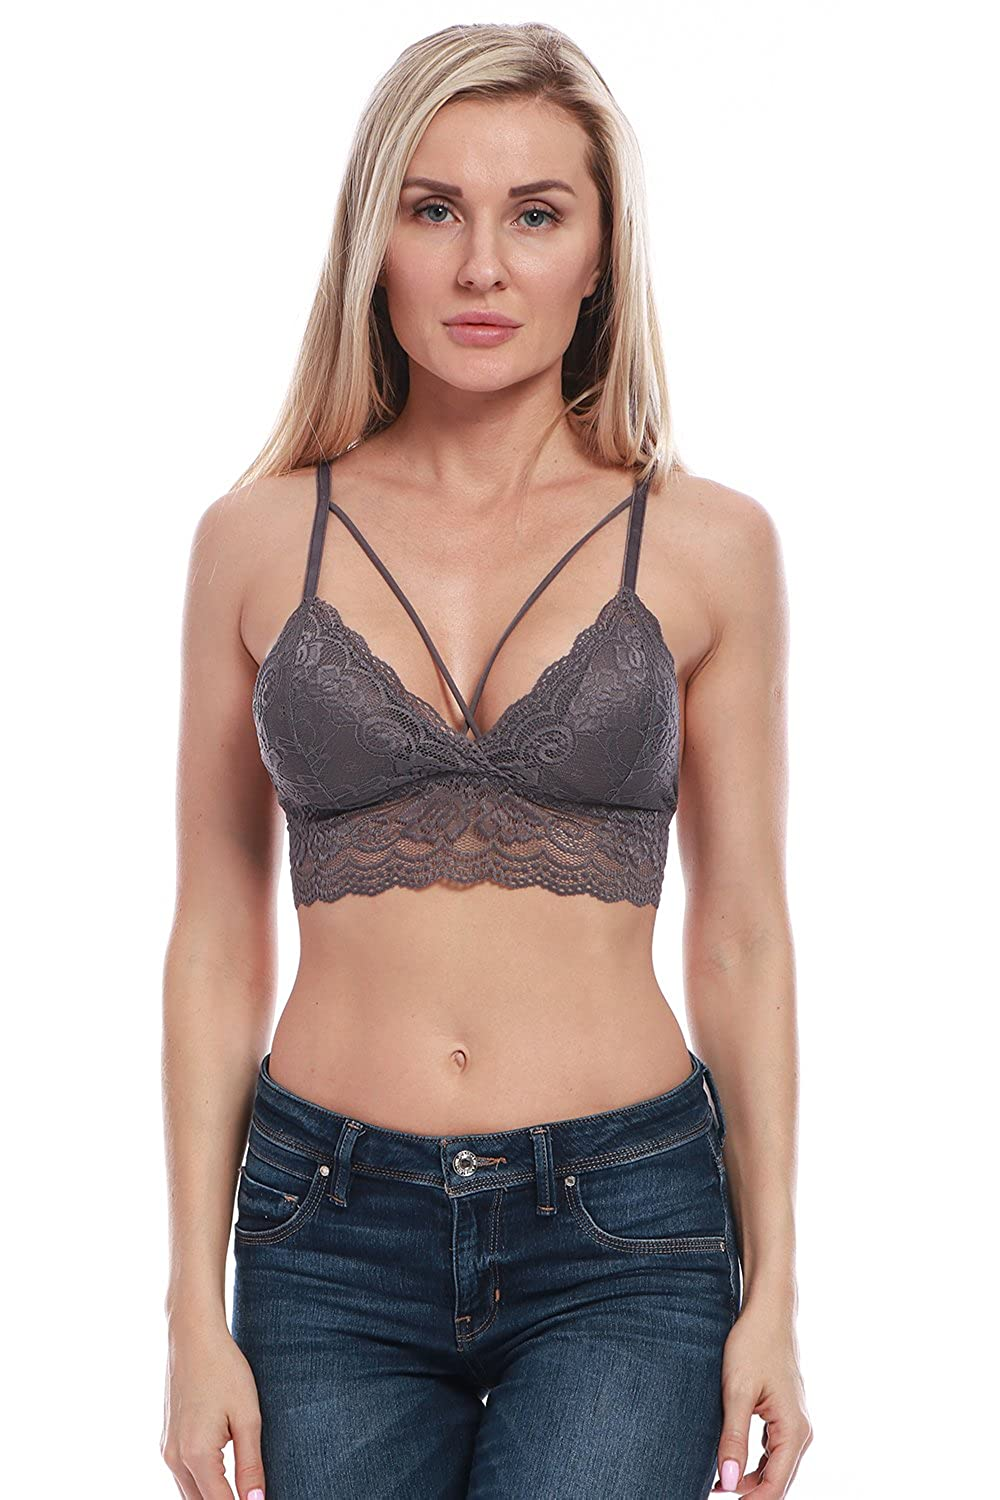 15e3d0ec2f2 Top 10 wholesale Black Cross Bralette - Chinabrands.com